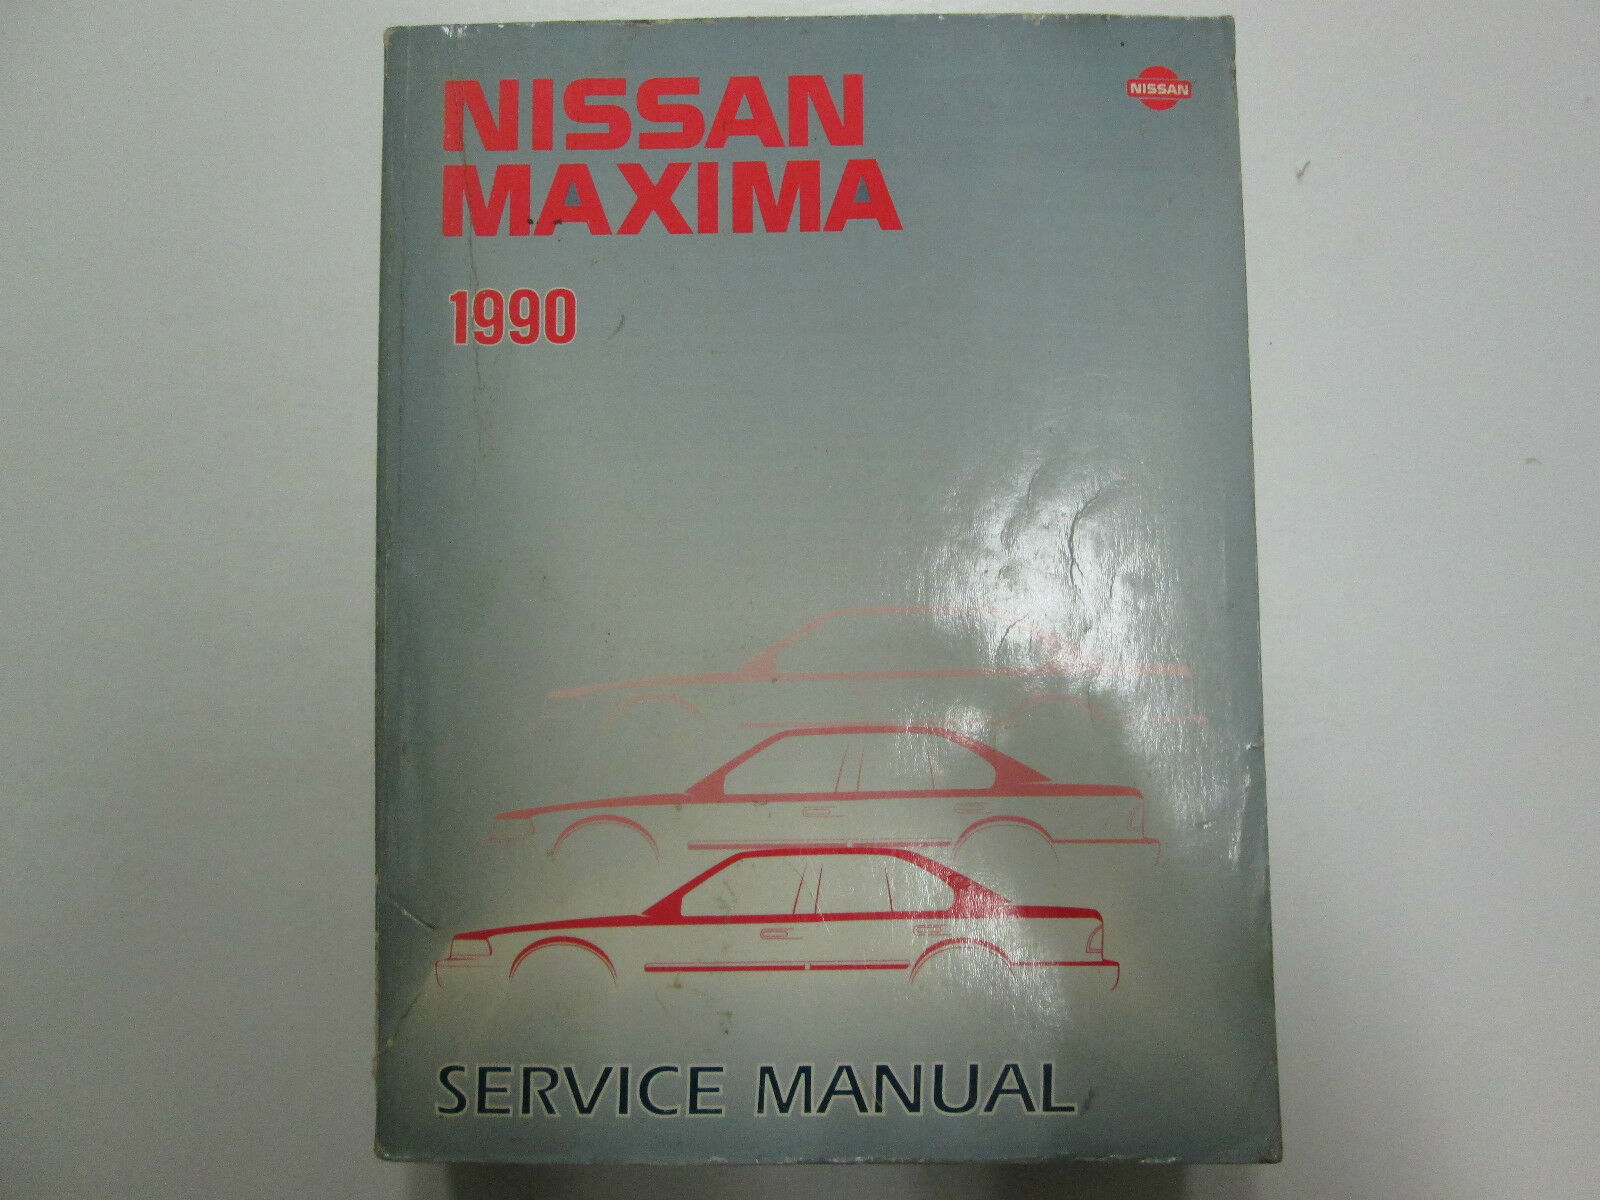 1990 Nissan Maxima Service Repair Shop Workshop Manual Factory OEM 90 1 of  9Only 1 available ...